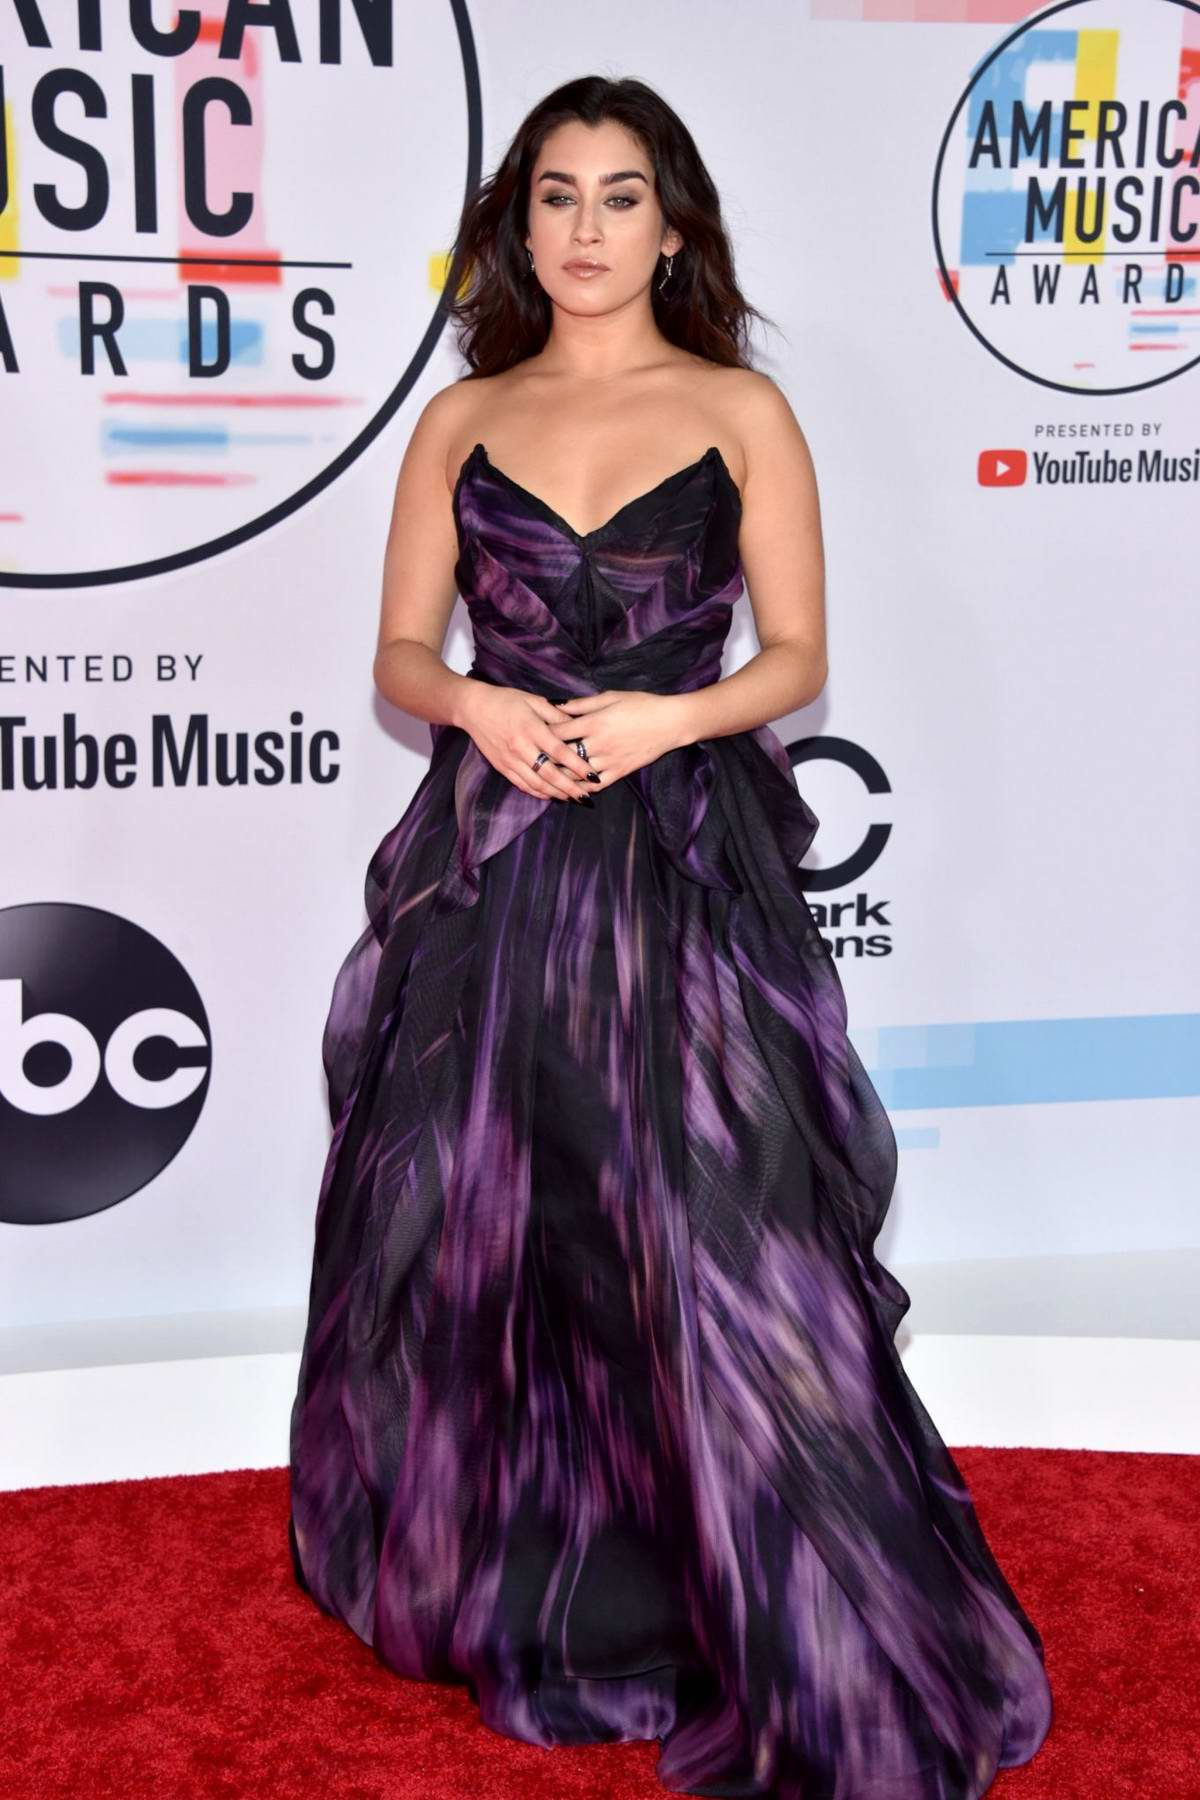 Lauren Jauregui attends 2018 American Music Awards (AMA 2018) at Microsoft Theater in Los Angeles